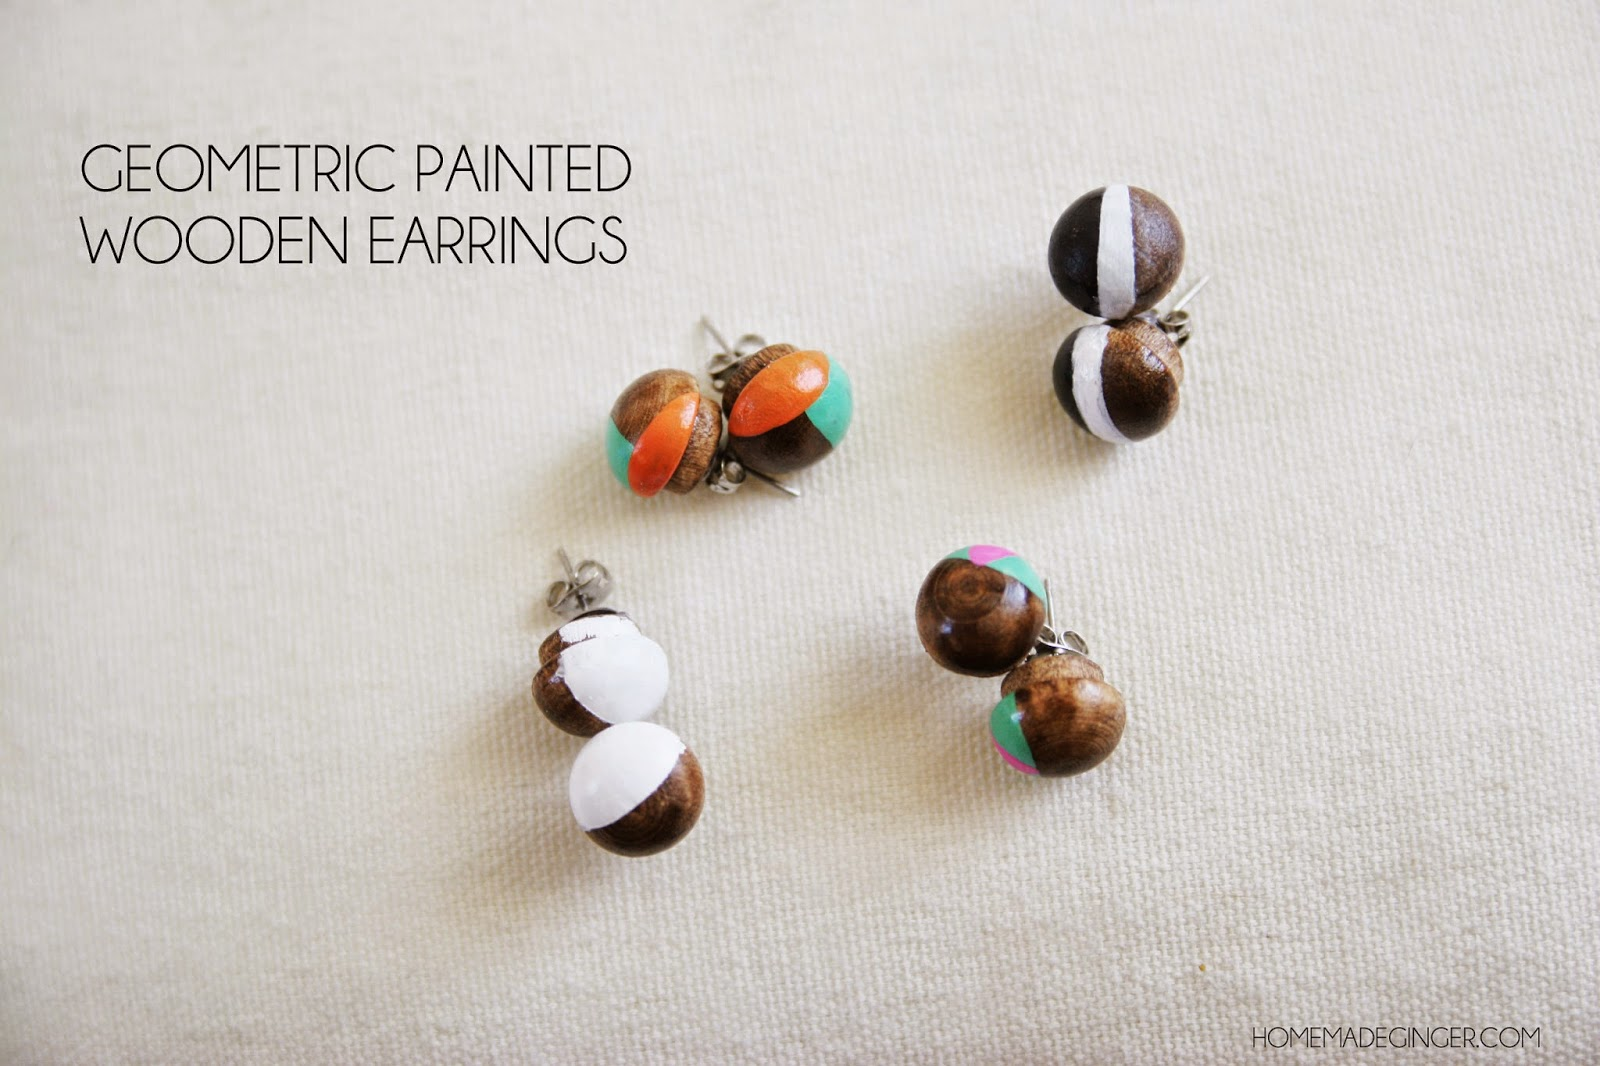 As If I Need Another Thing To Diy, Right? But I Came Up With These Little  Wooden Stud Earrings That I Thought Would Make A Fun Stocking Stuffer Idea